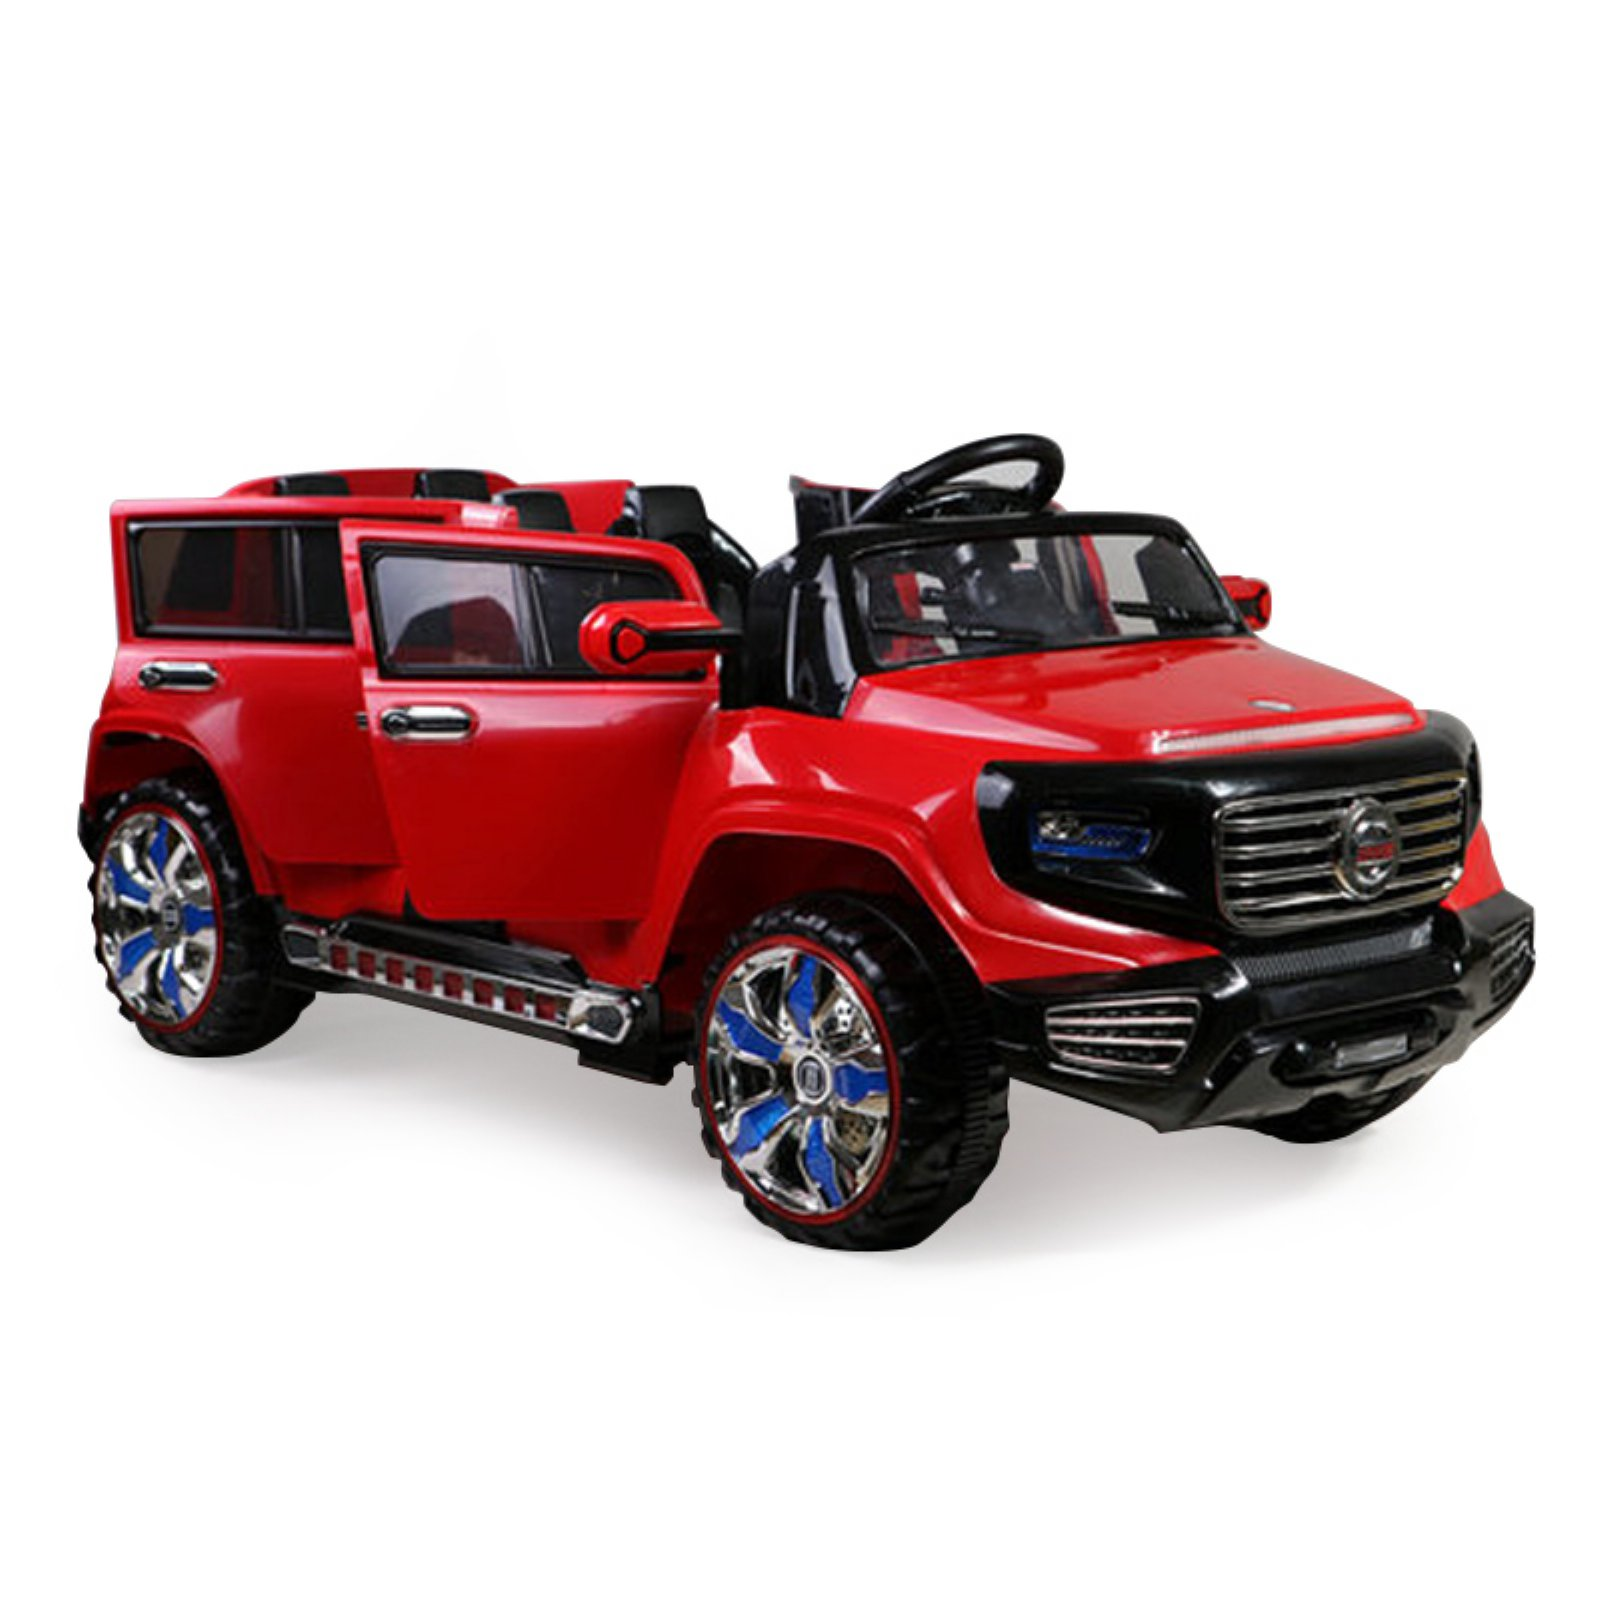 Best Ride on Cars 12V Battery Powered Big 2 Seater SUV Ri...